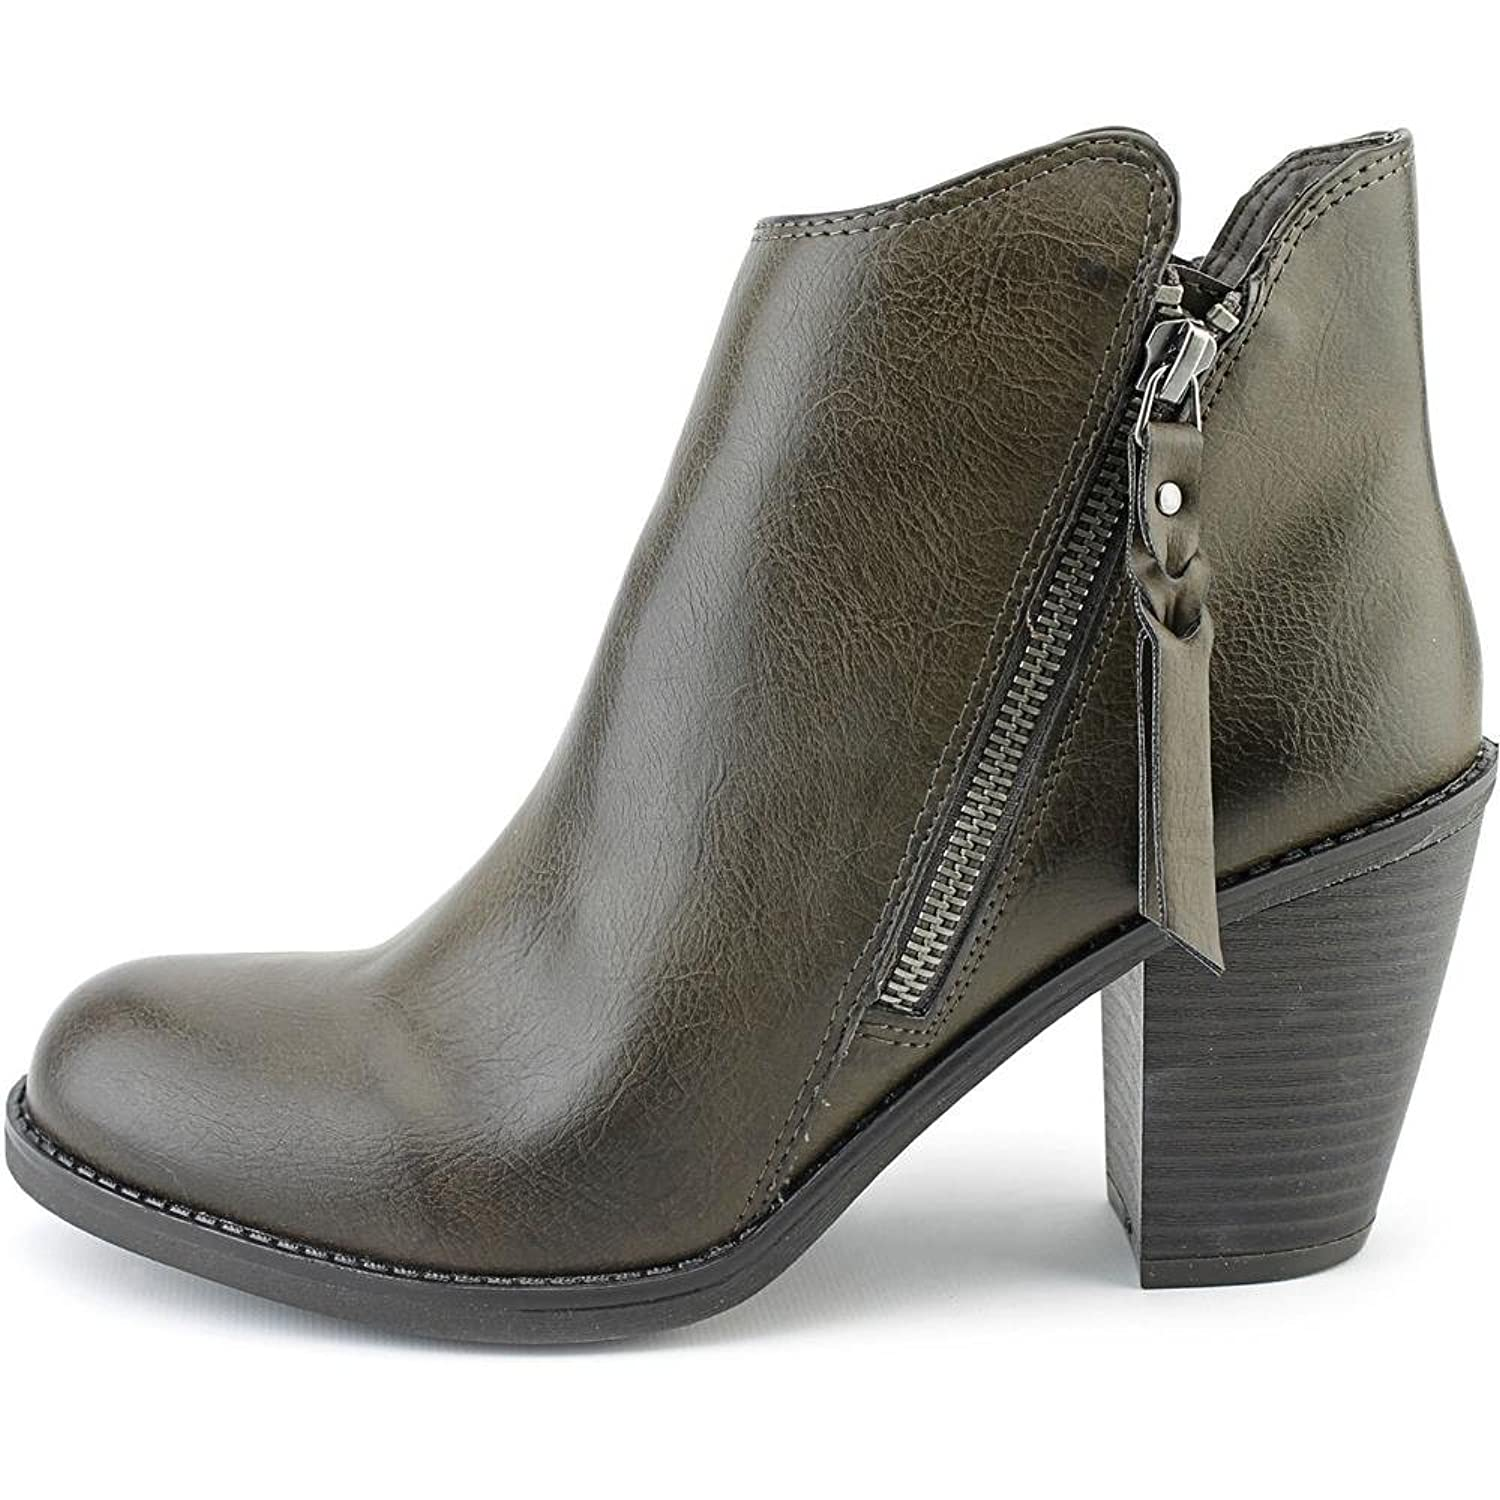 American Rag Women's Baxter Ankle Boots